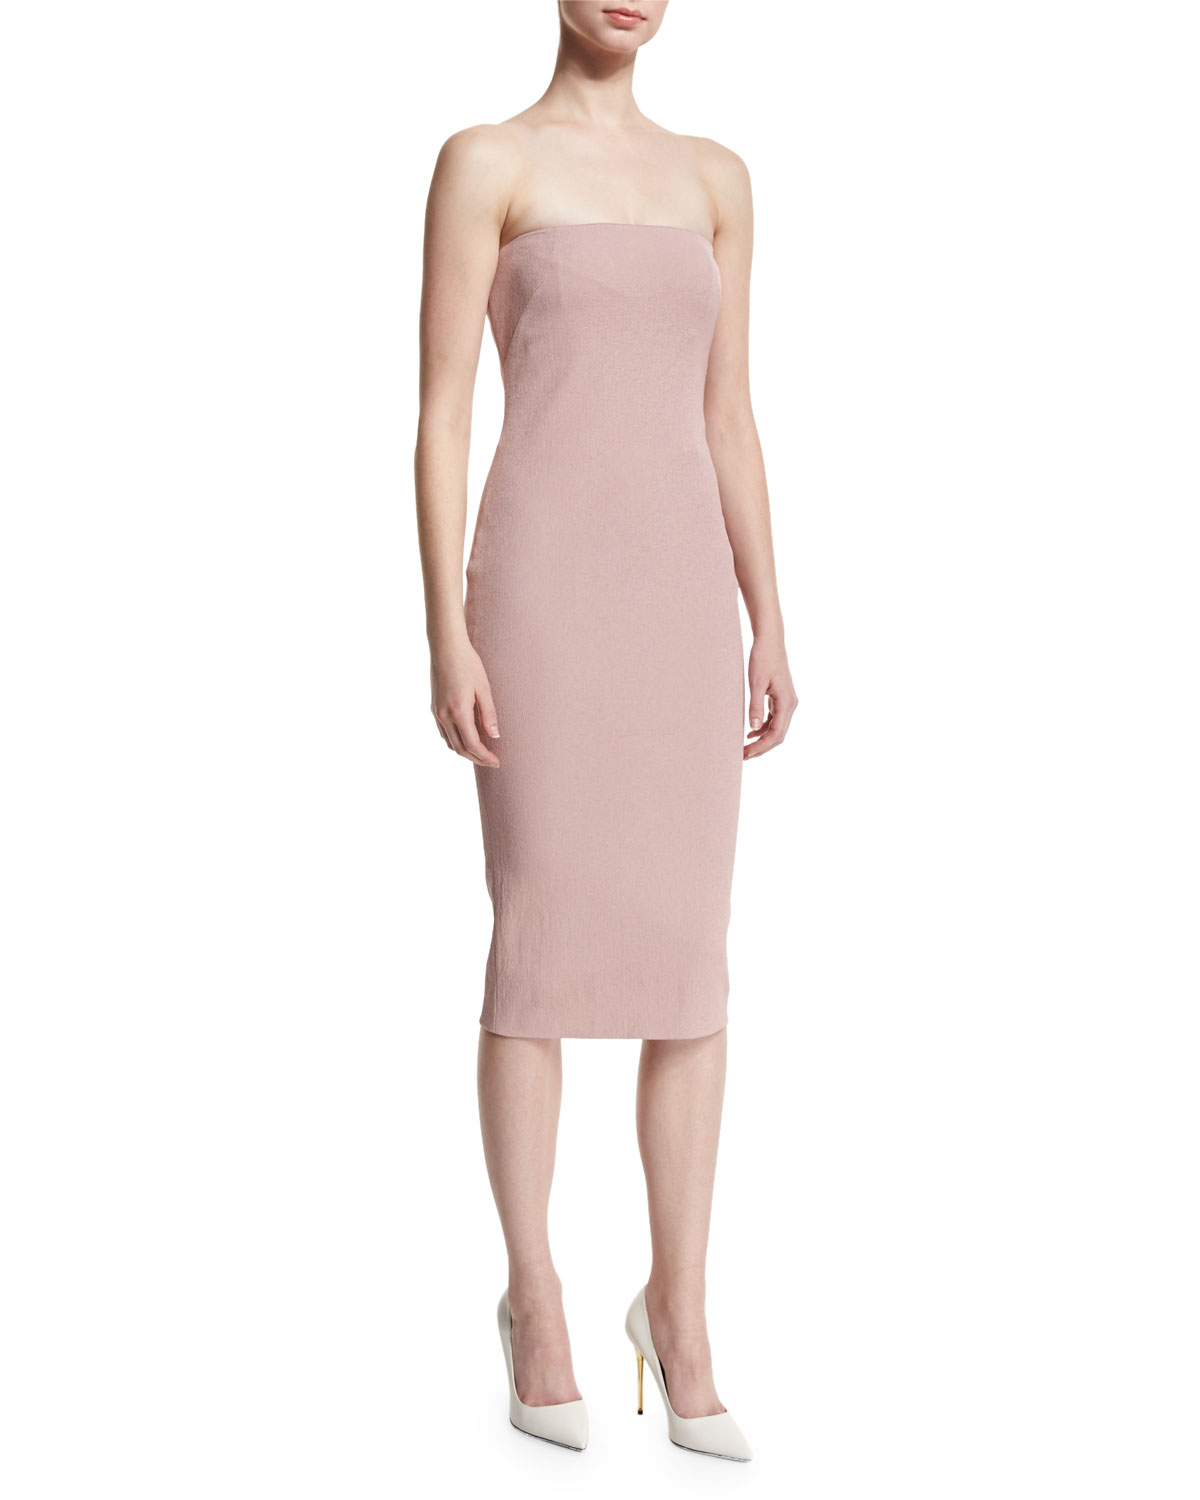 TOM FORD Strapless Tube Dress, Nude/Light Pink | Neiman Marcus